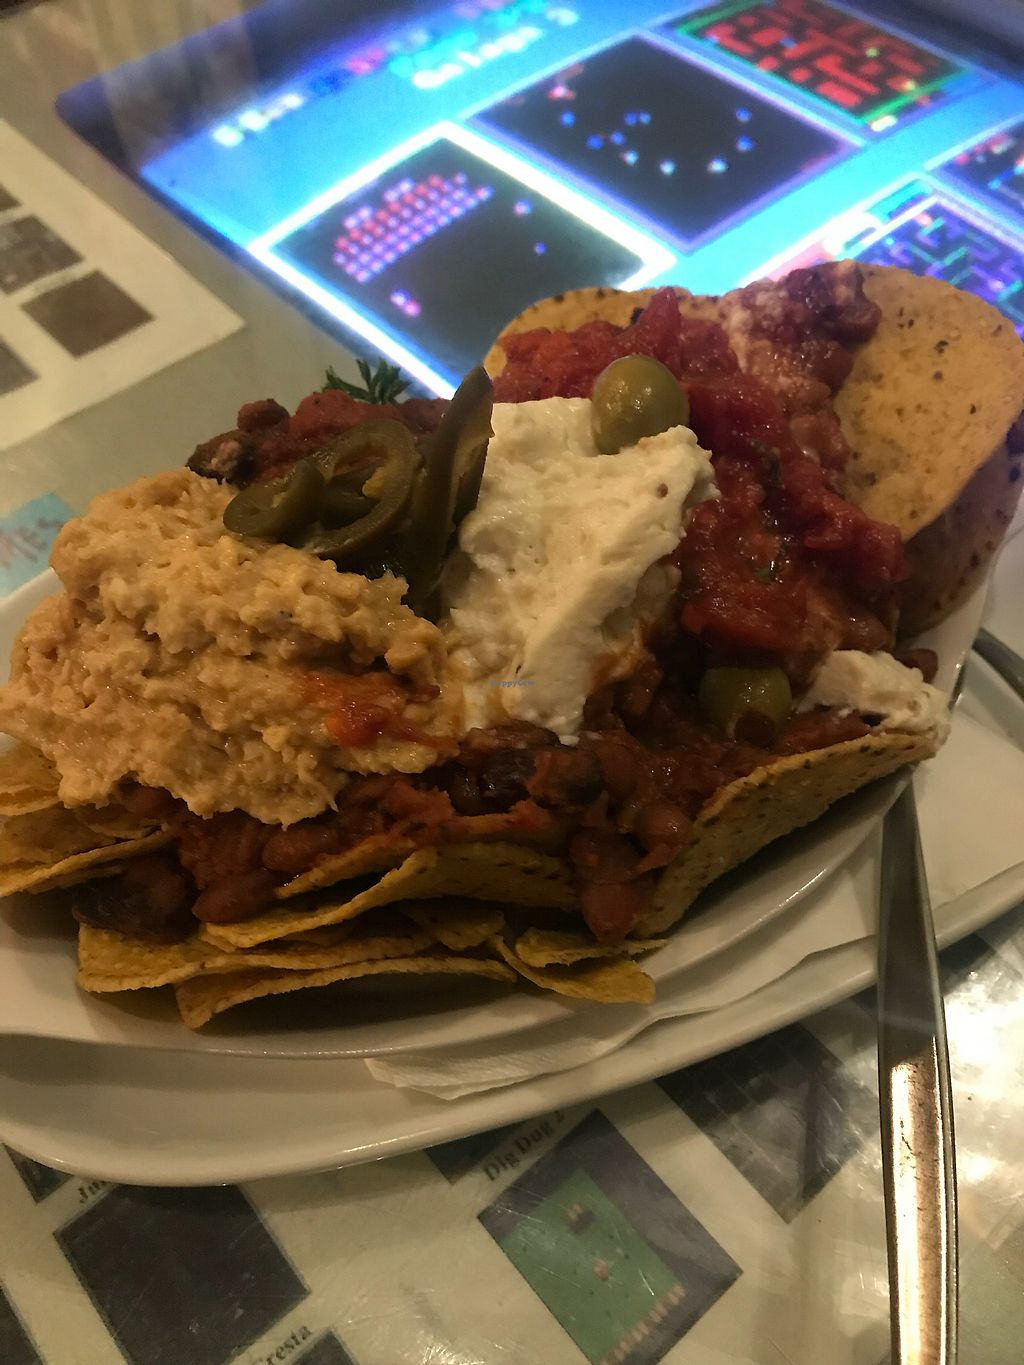 "Photo of Midnight Espresso Bar  by <a href=""/members/profile/TianaNelson"">TianaNelson</a> <br/>Nachos! Vegan. So good <br/> February 25, 2018  - <a href='/contact/abuse/image/5126/363511'>Report</a>"